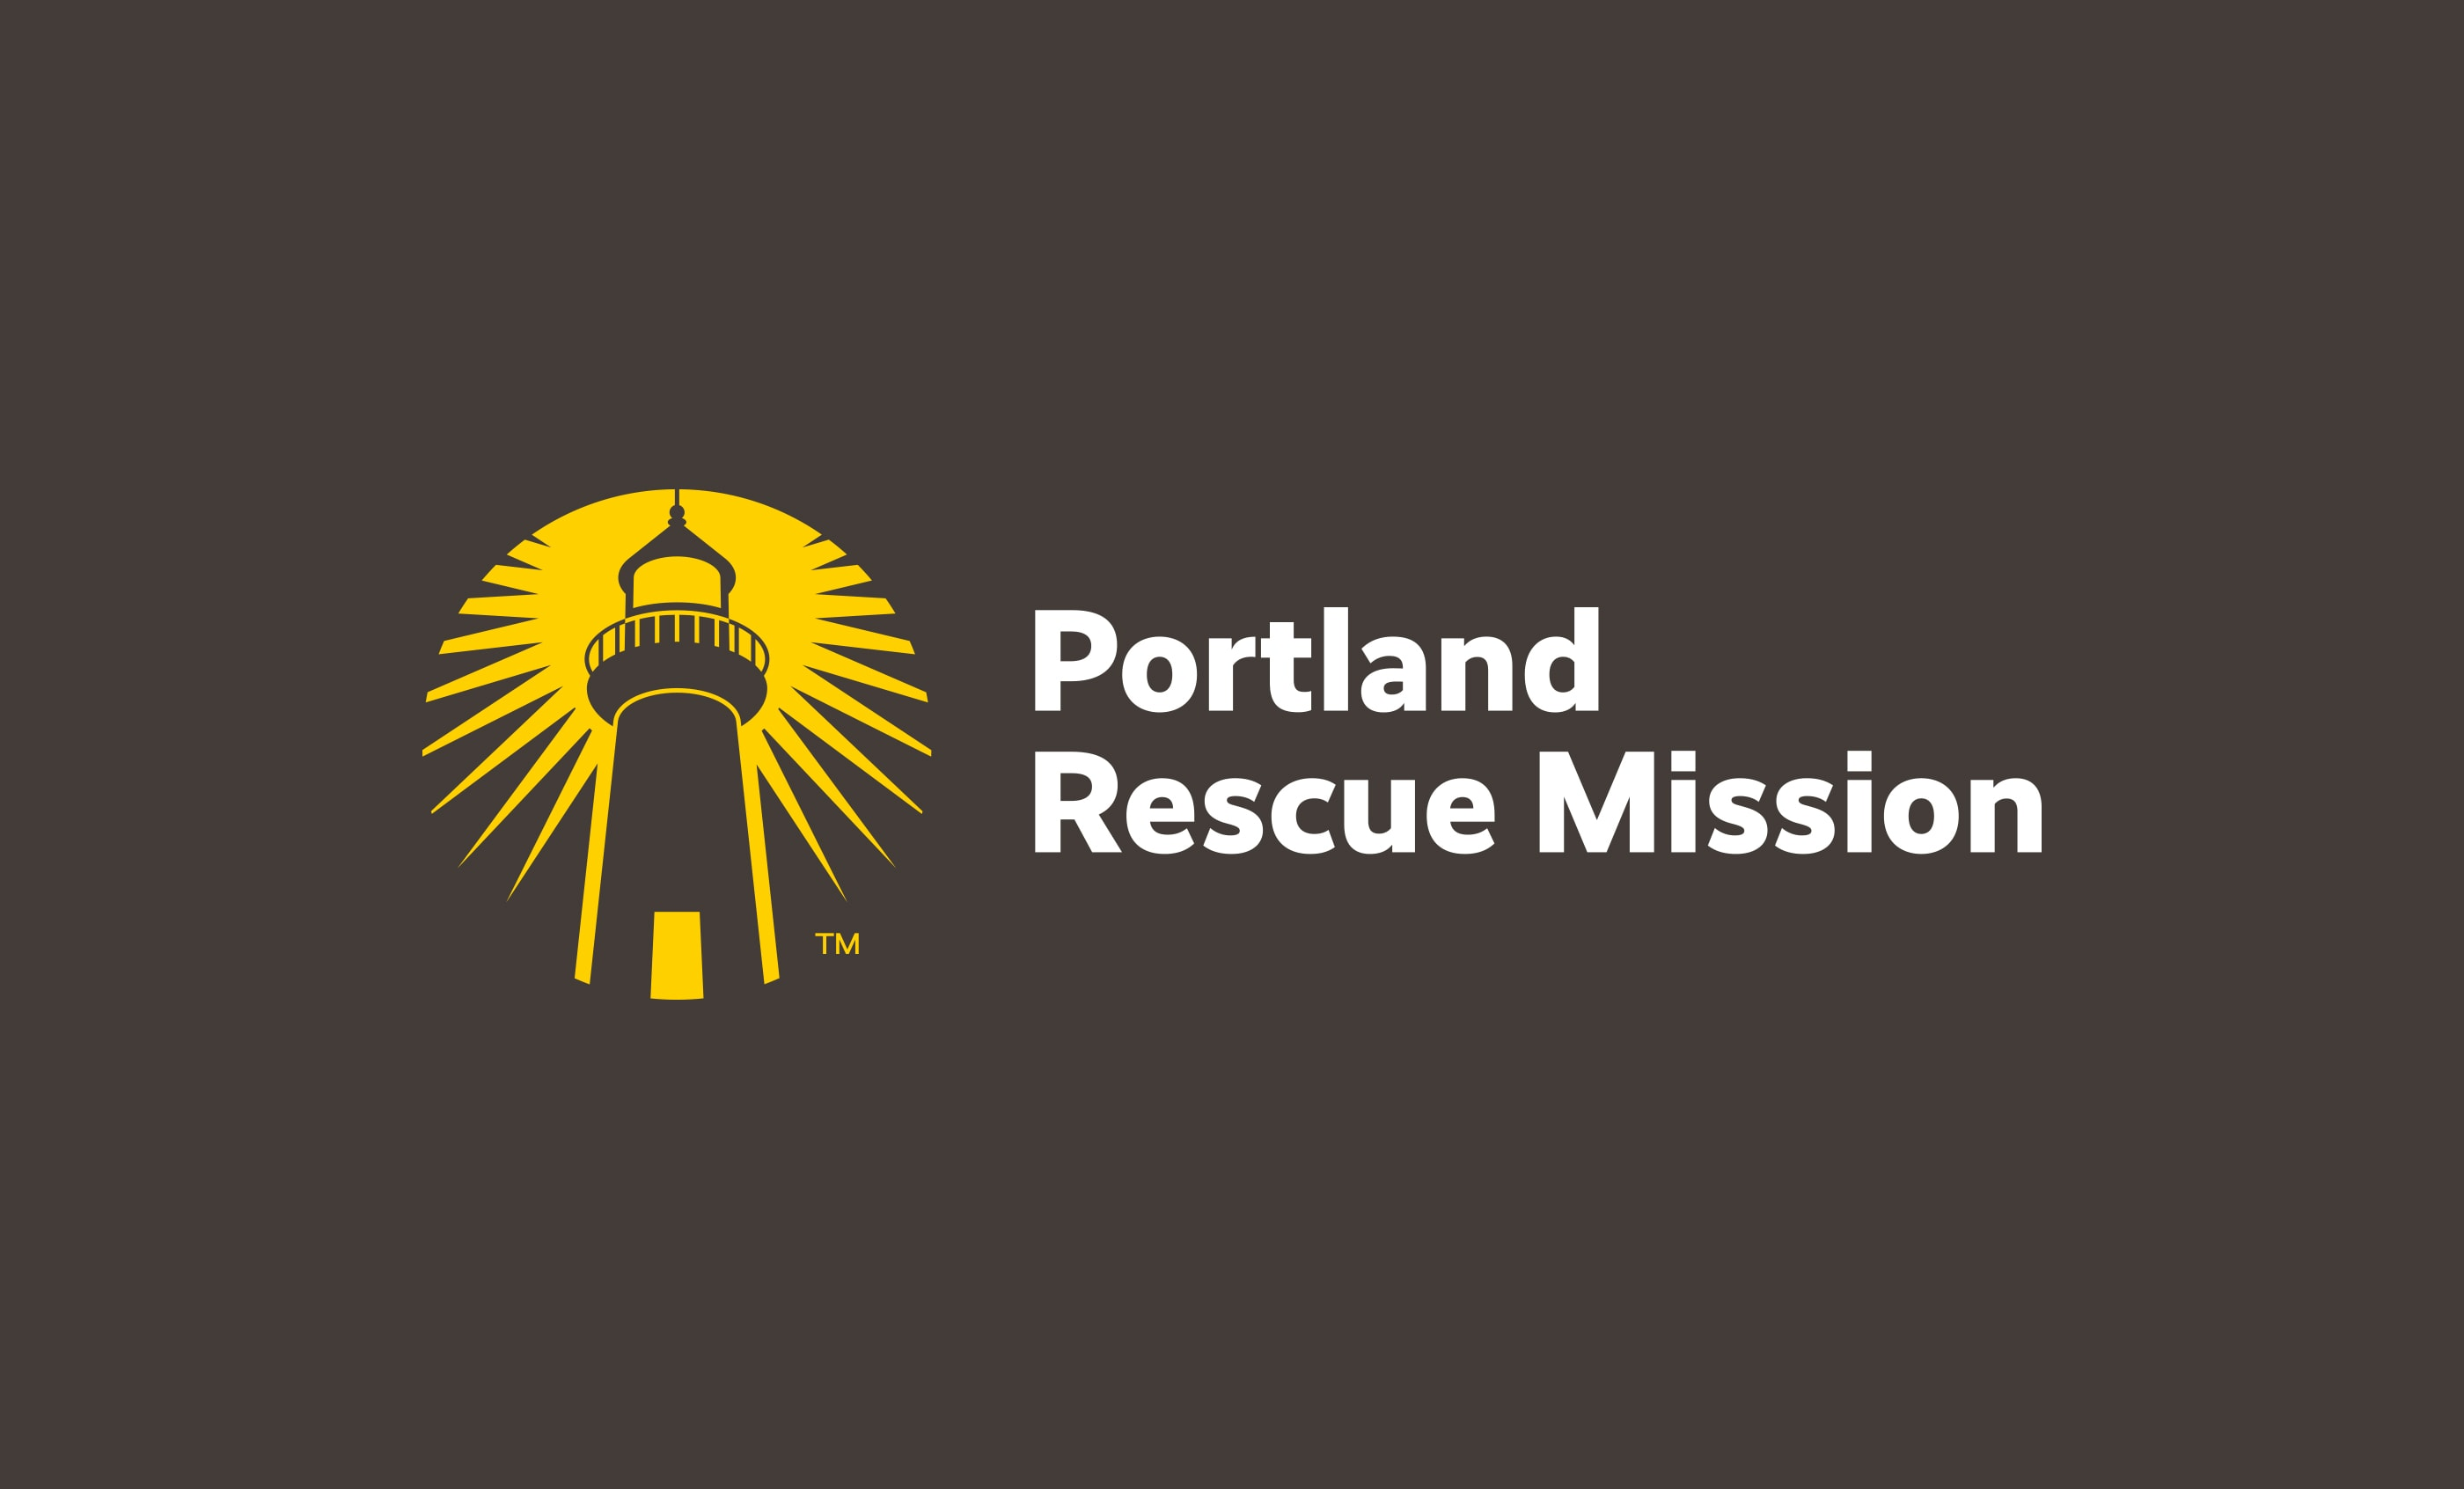 Portland Rescue Mission; Trademark